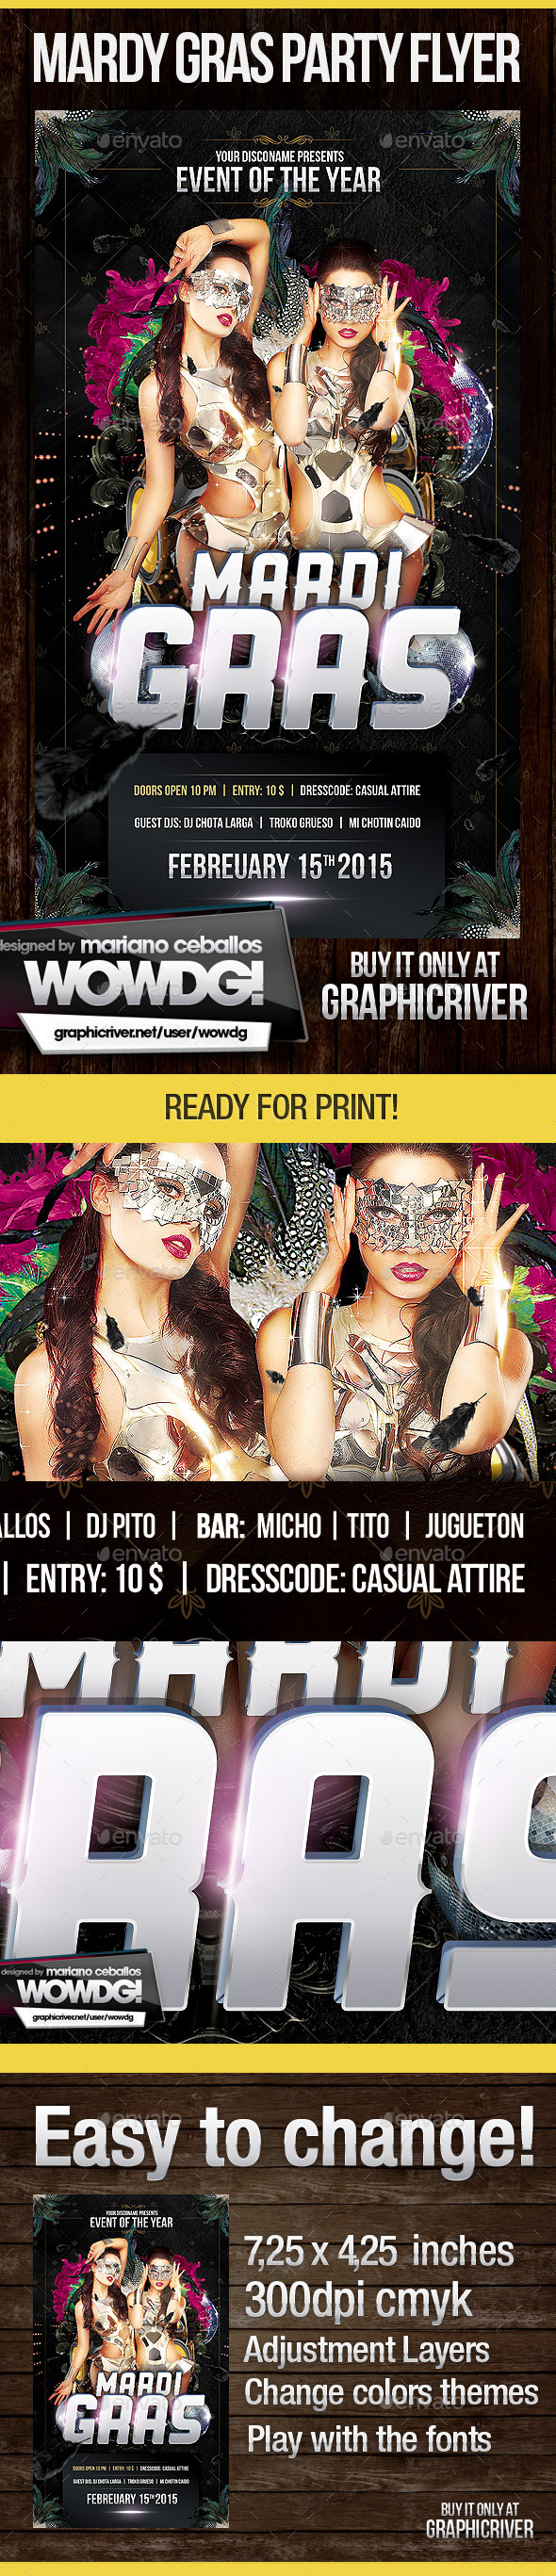 Mardi Gras Template - Events Flyers